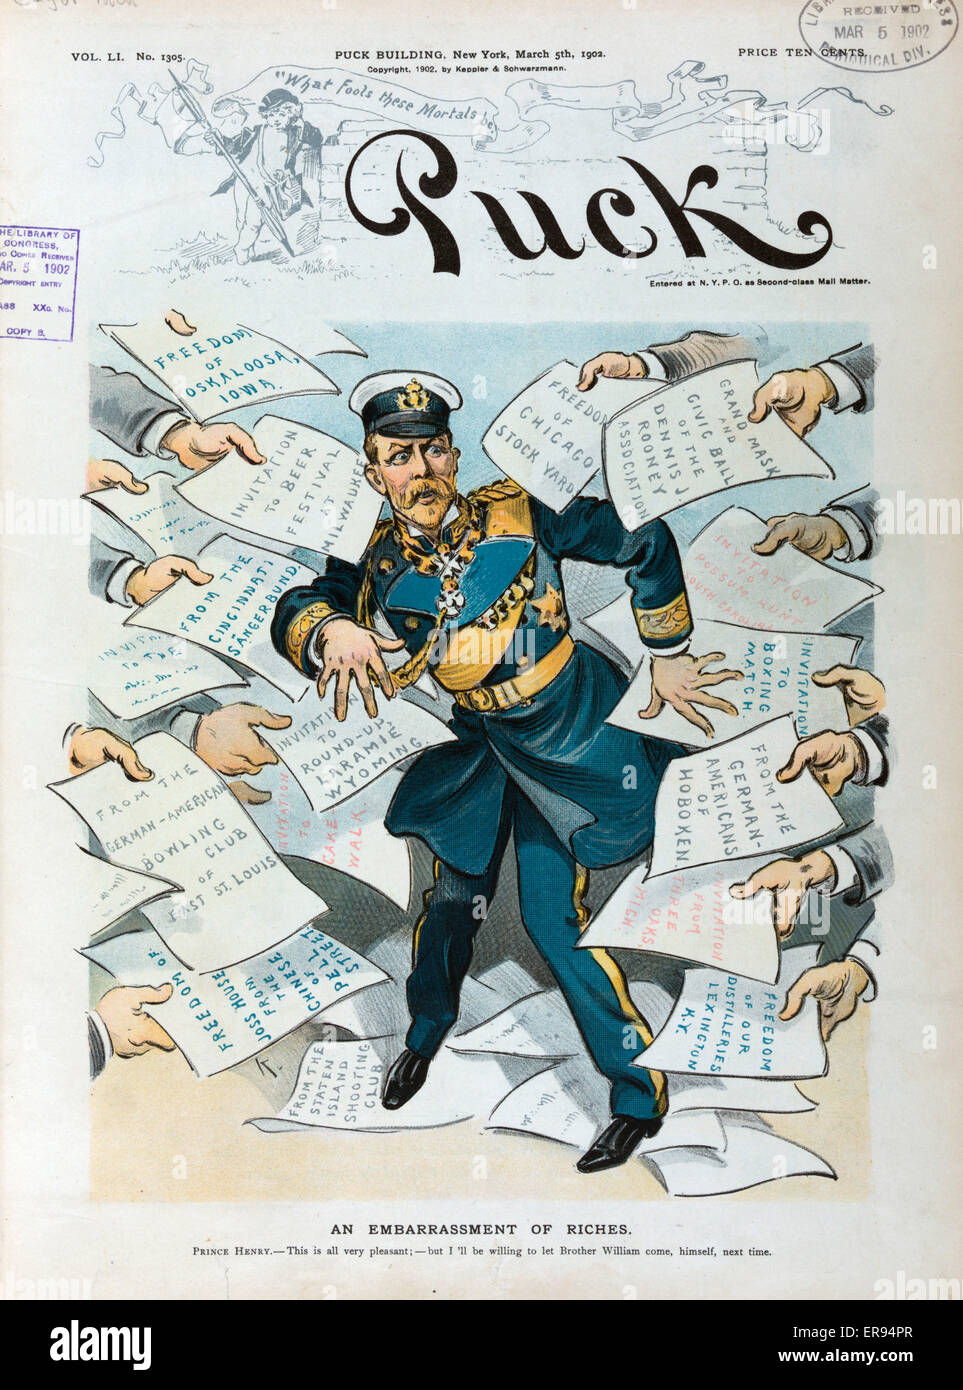 An embarrassment of riches. Illustration shows Prince Henry overwhelmed by invitations to attend events around the - Stock Image